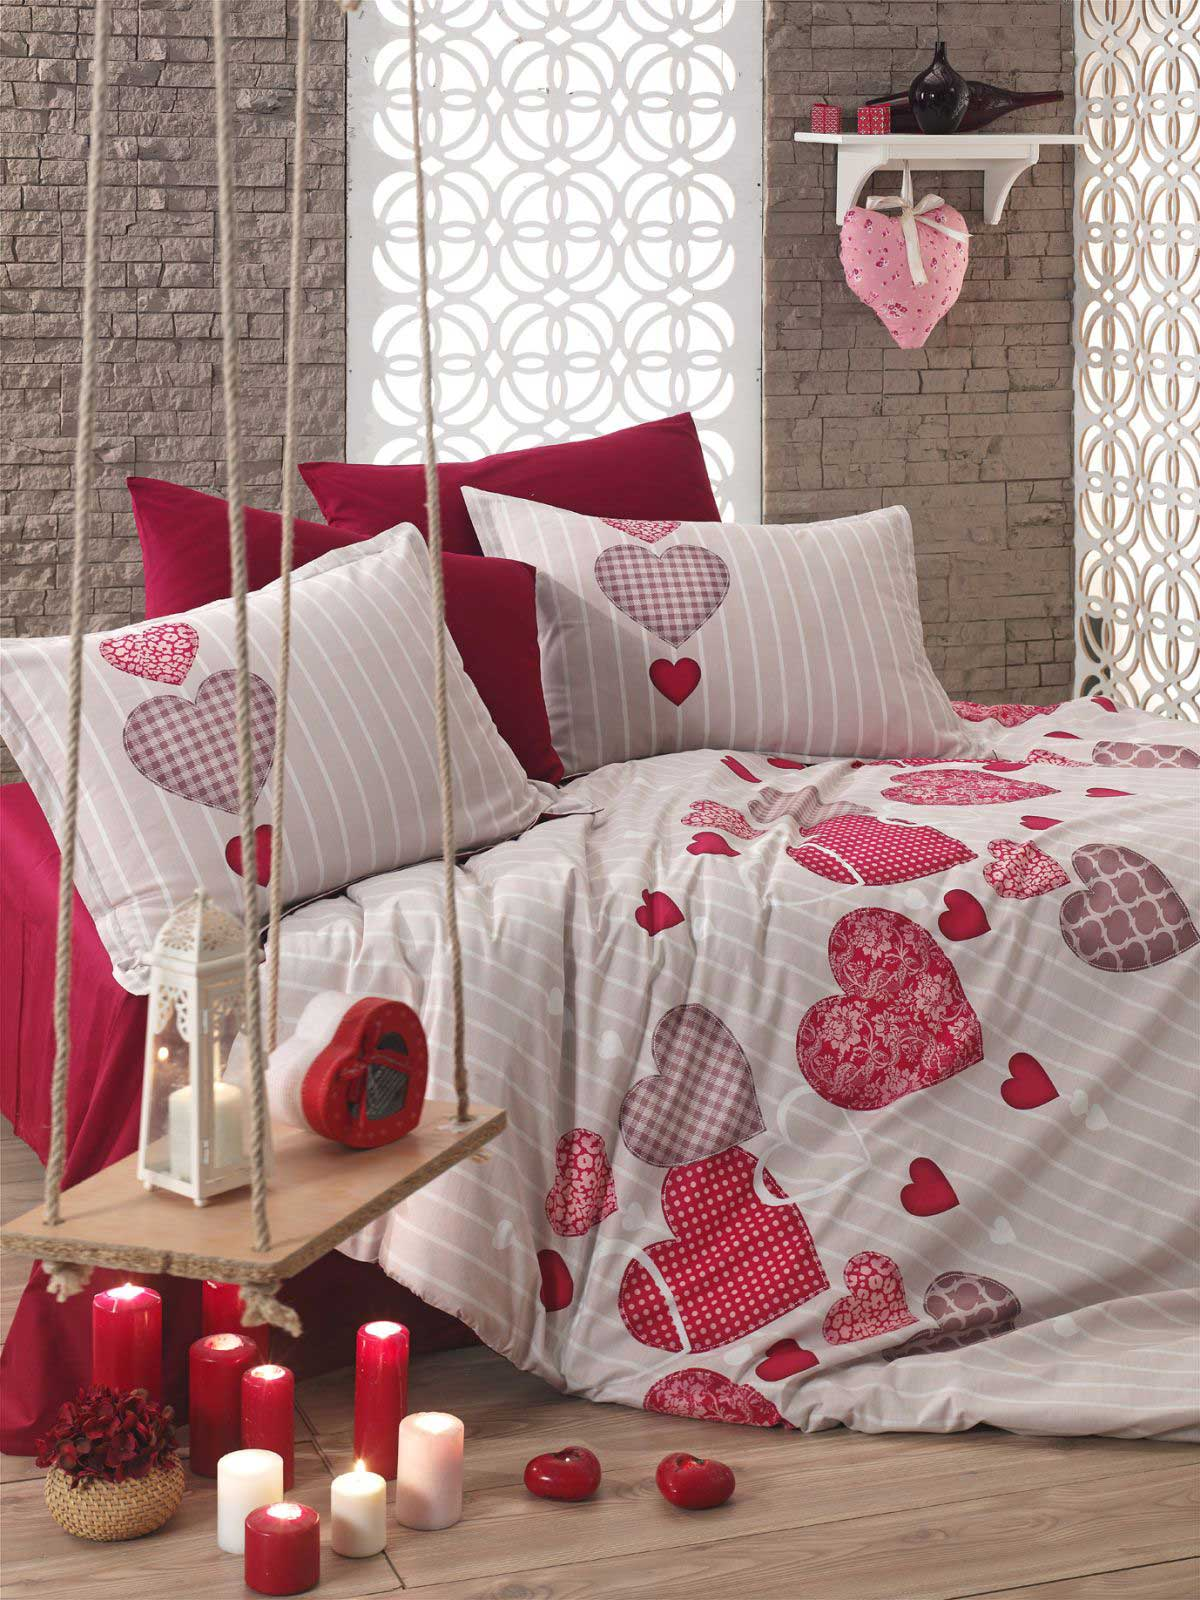 6 tlg bettw sche bettgarnitur 100 baumwolle kissen 220x240 cm heart rot neu ebay. Black Bedroom Furniture Sets. Home Design Ideas